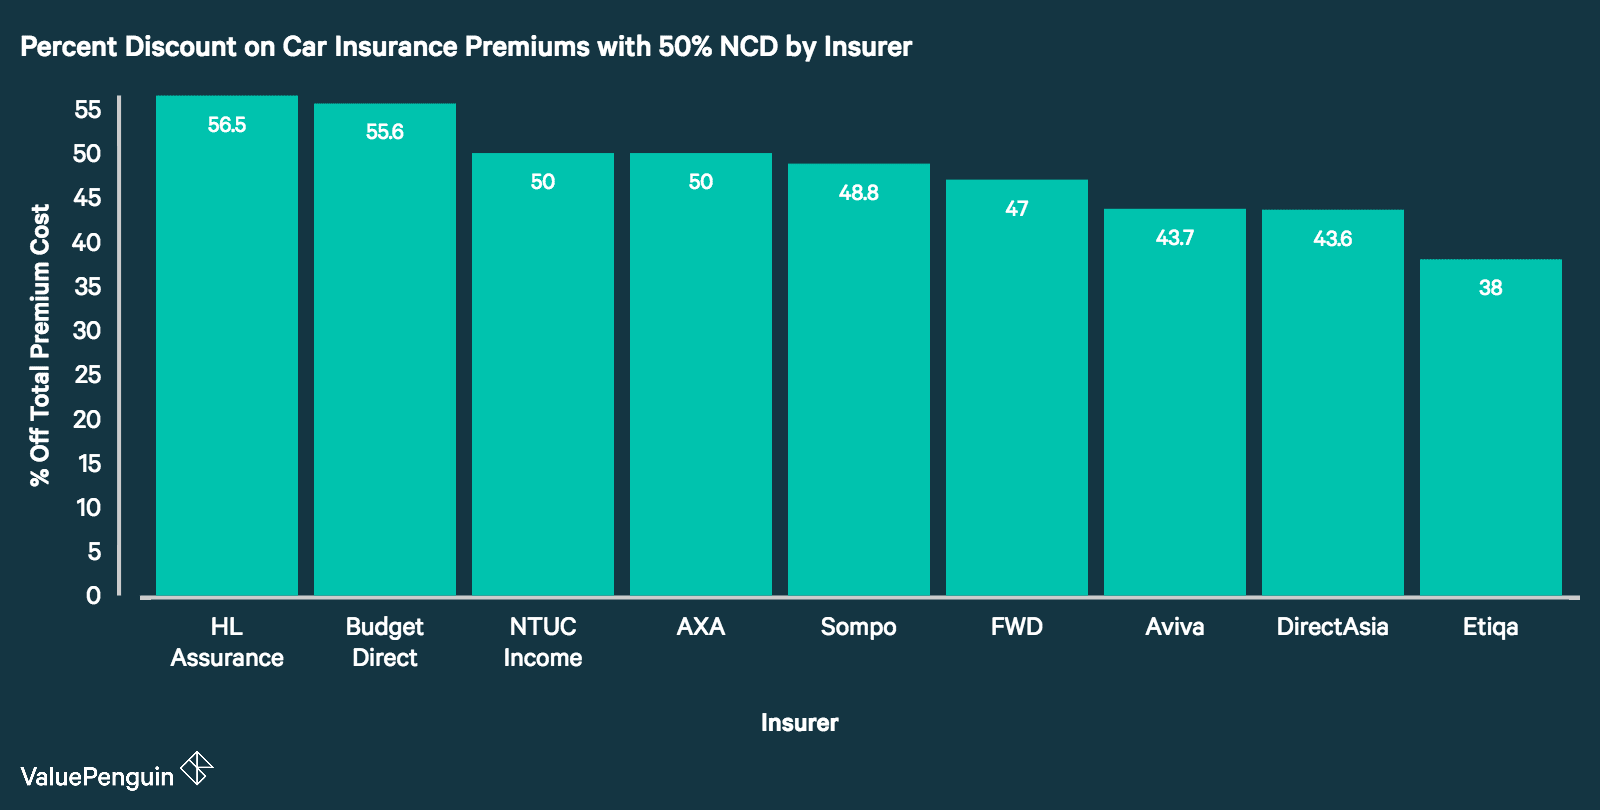 This graph compares the total percent discount off car insurance premiums one would receive for having a 50% NCD. HL Assurance and Budget Direct both discount premiums by over 50%.